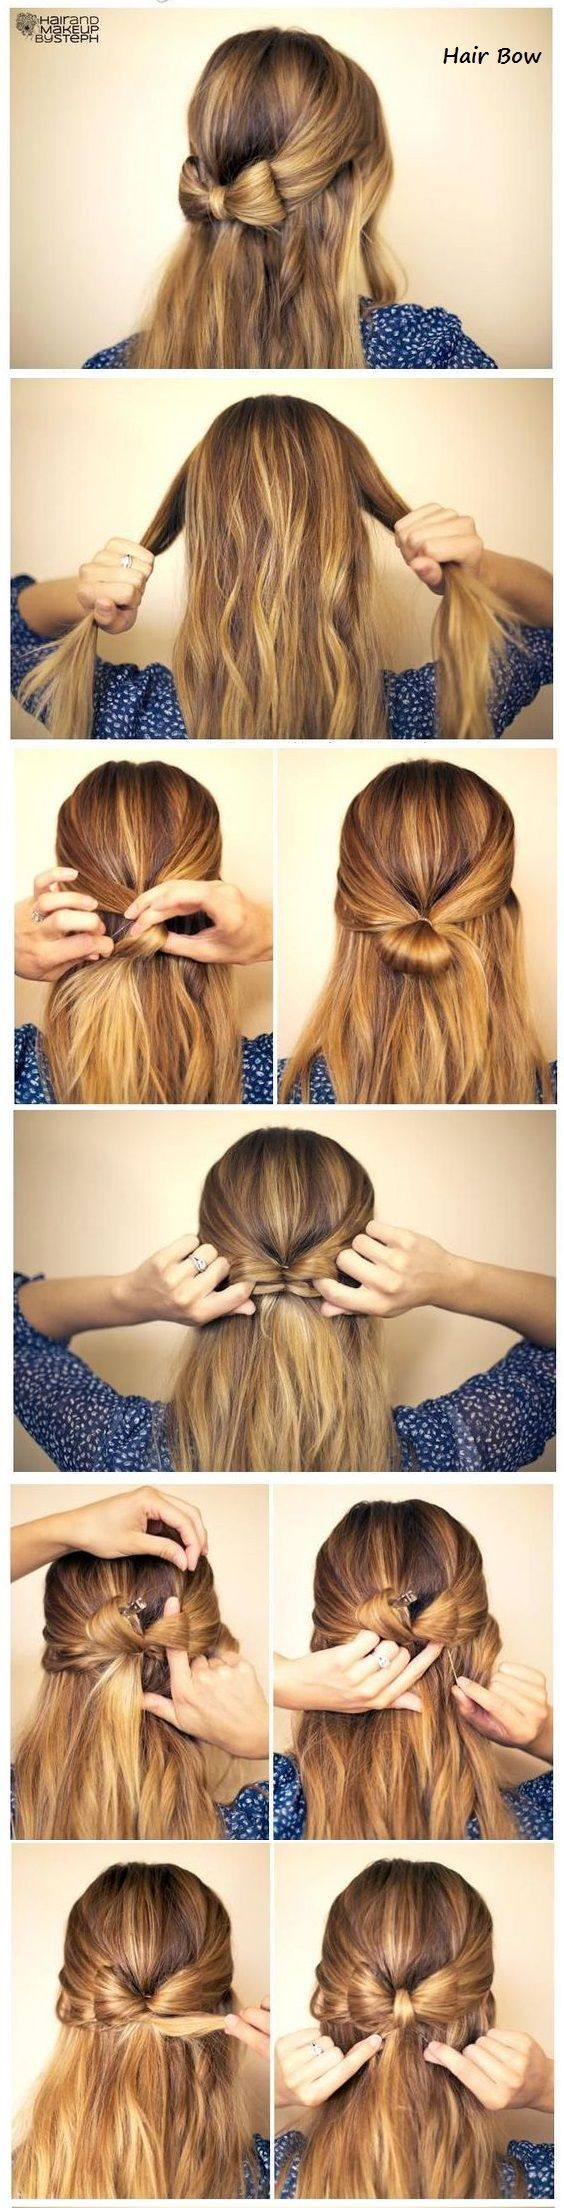 15 Easy Prom Hairstyles for Long Hair You Can DIY At Home | Long hair styles, Hair styles, Step ...